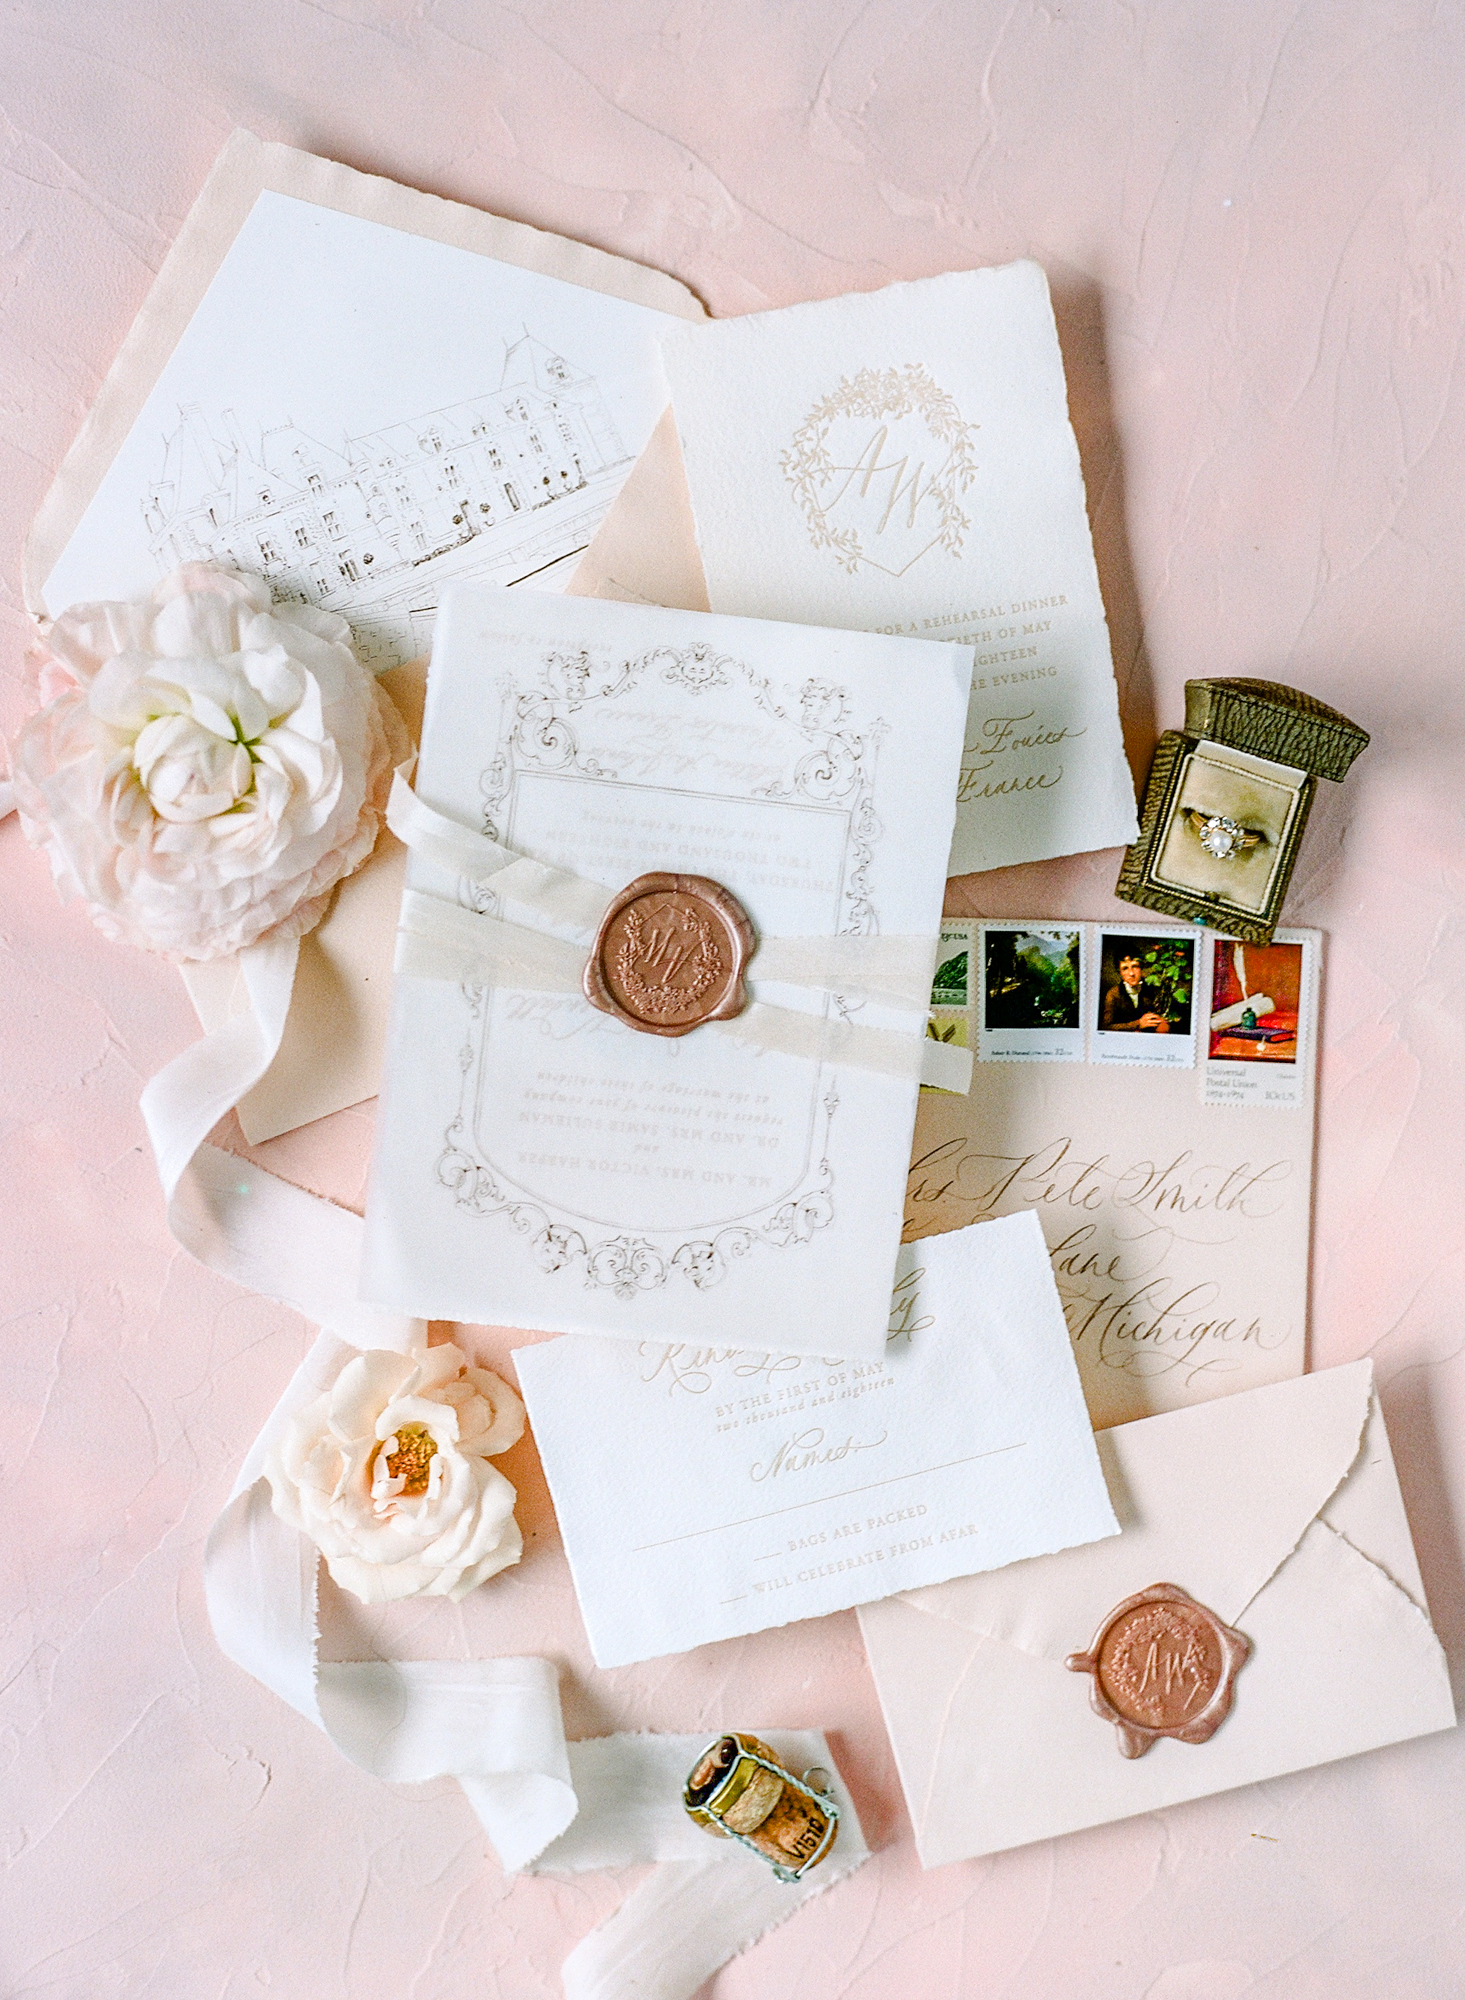 classic invitation pink and white color elements with illustration etching